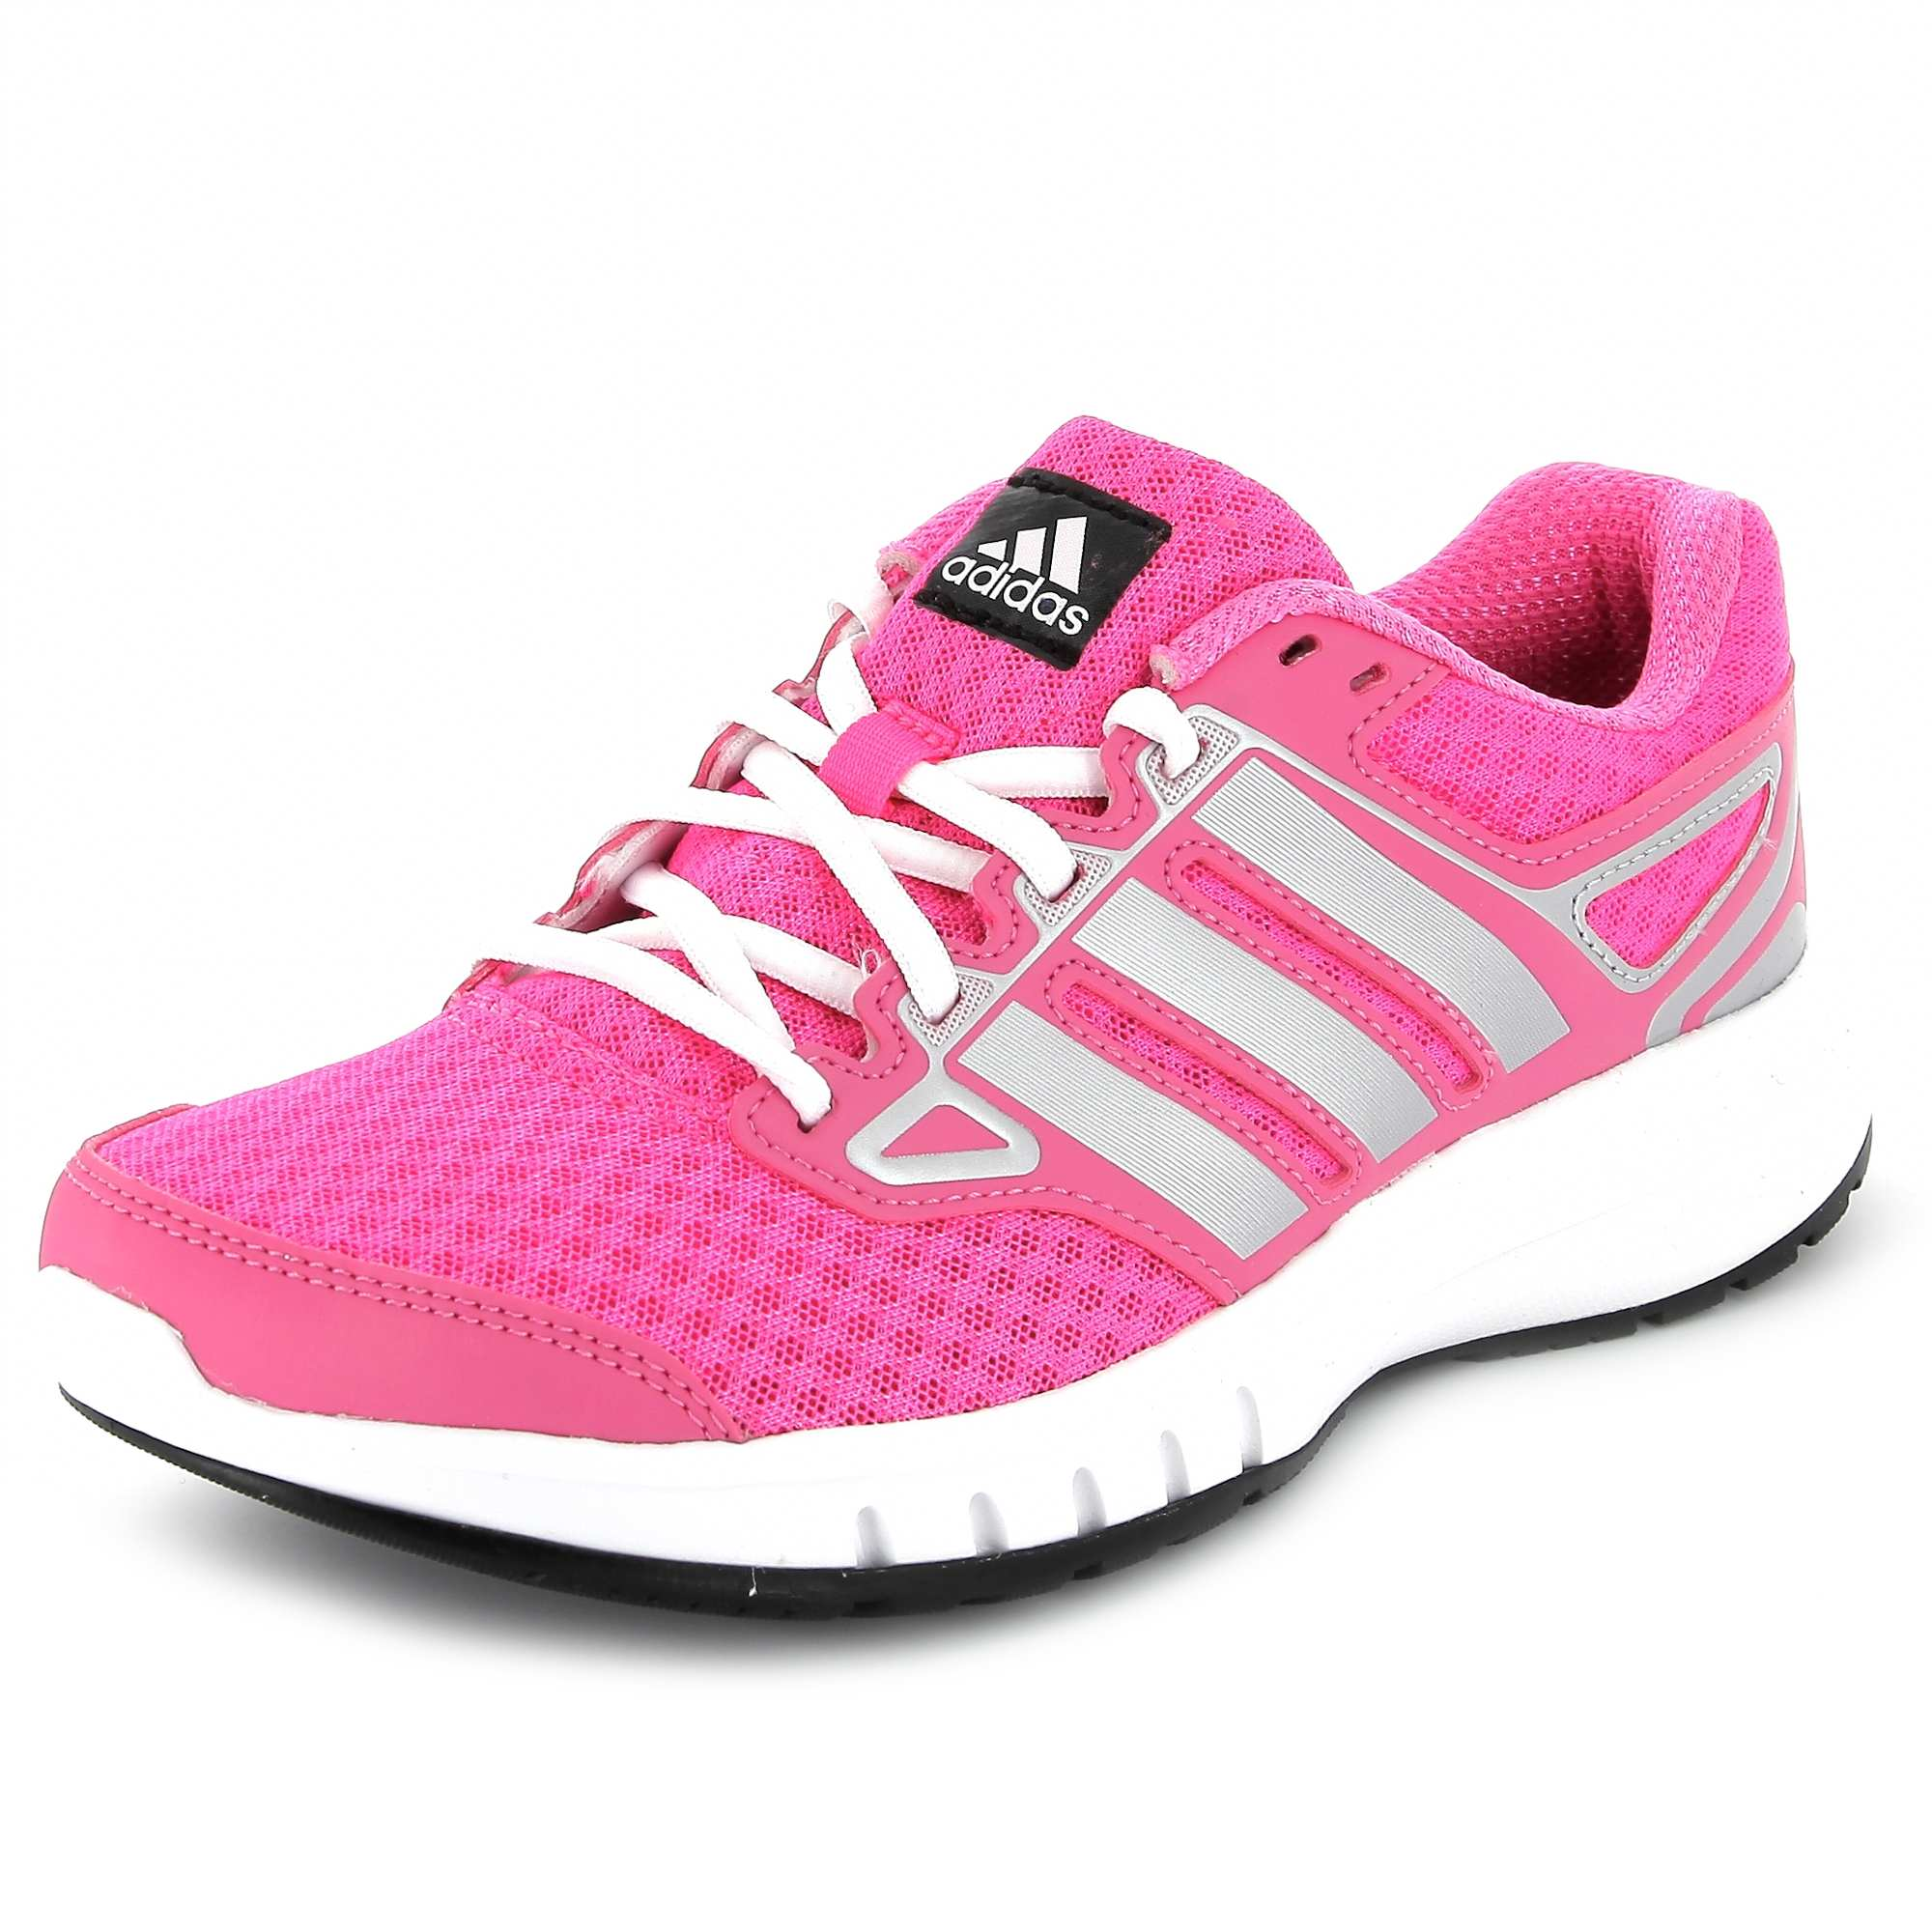 new product 8df83 362e3 ... running adidas femme pas cher